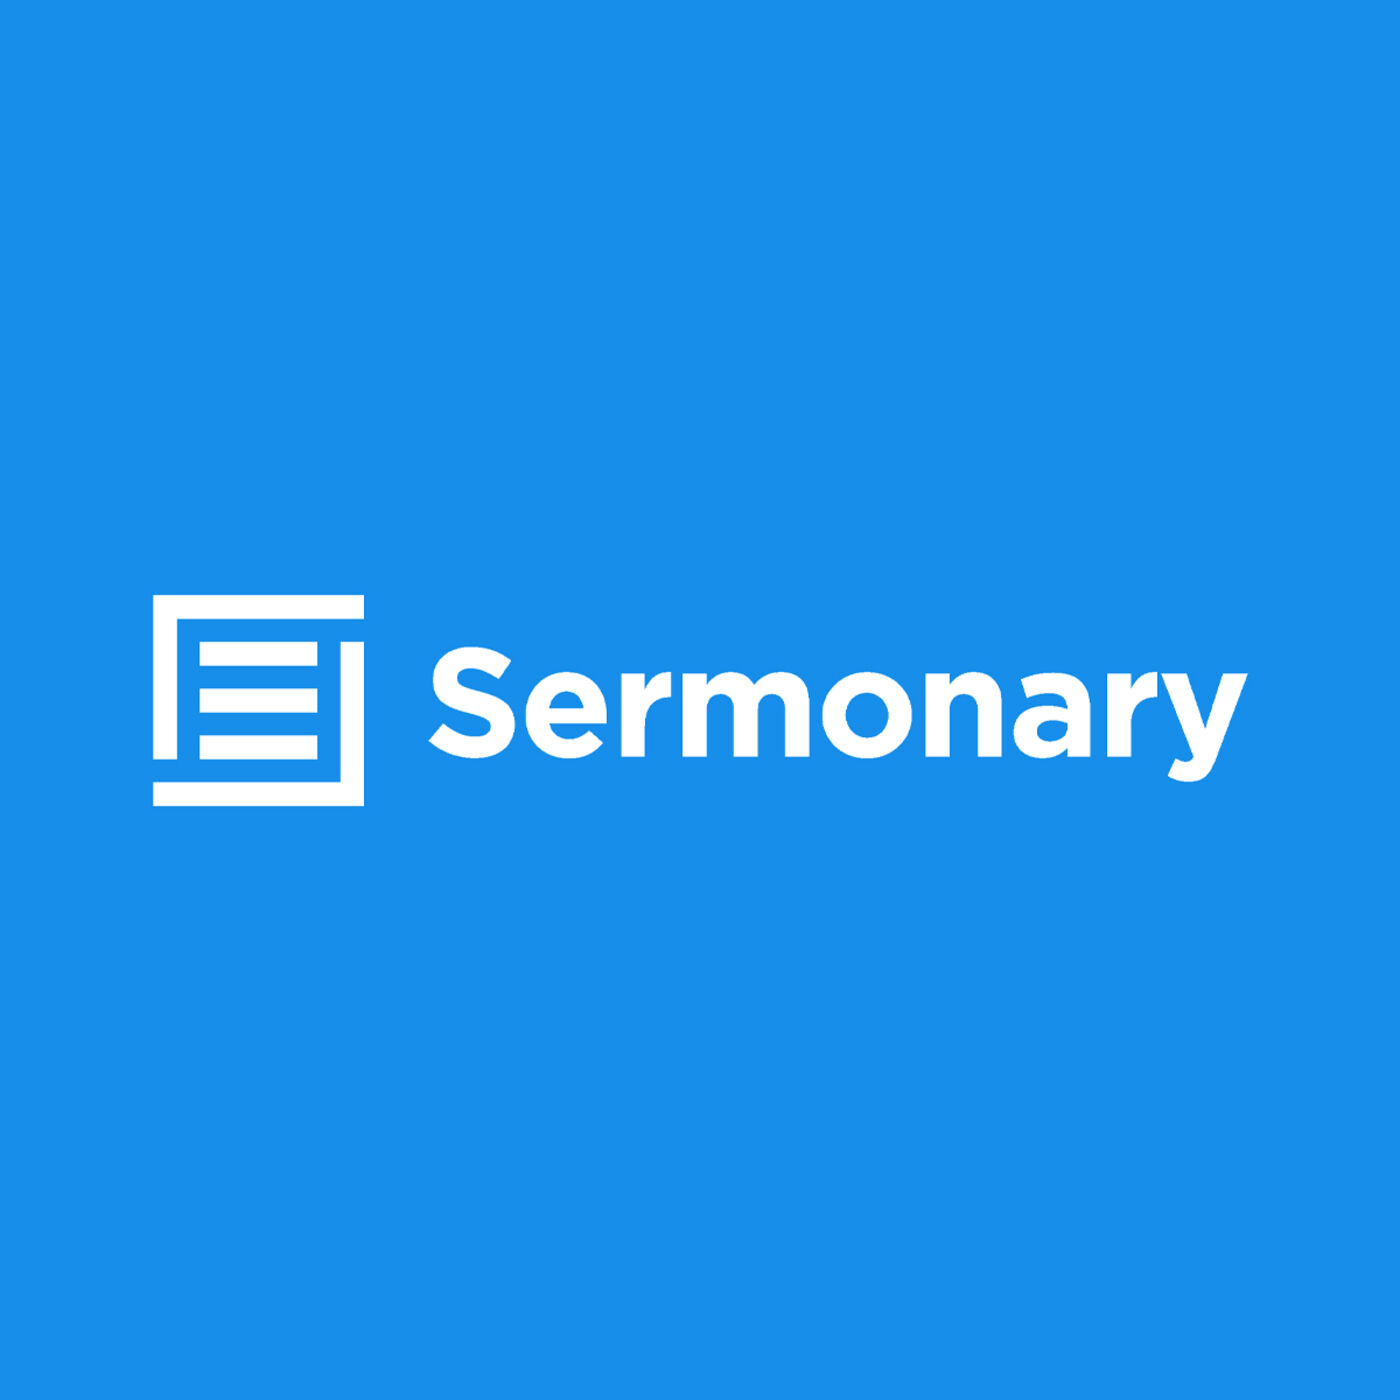 Practical Tips for Public Speaking - Sermonary